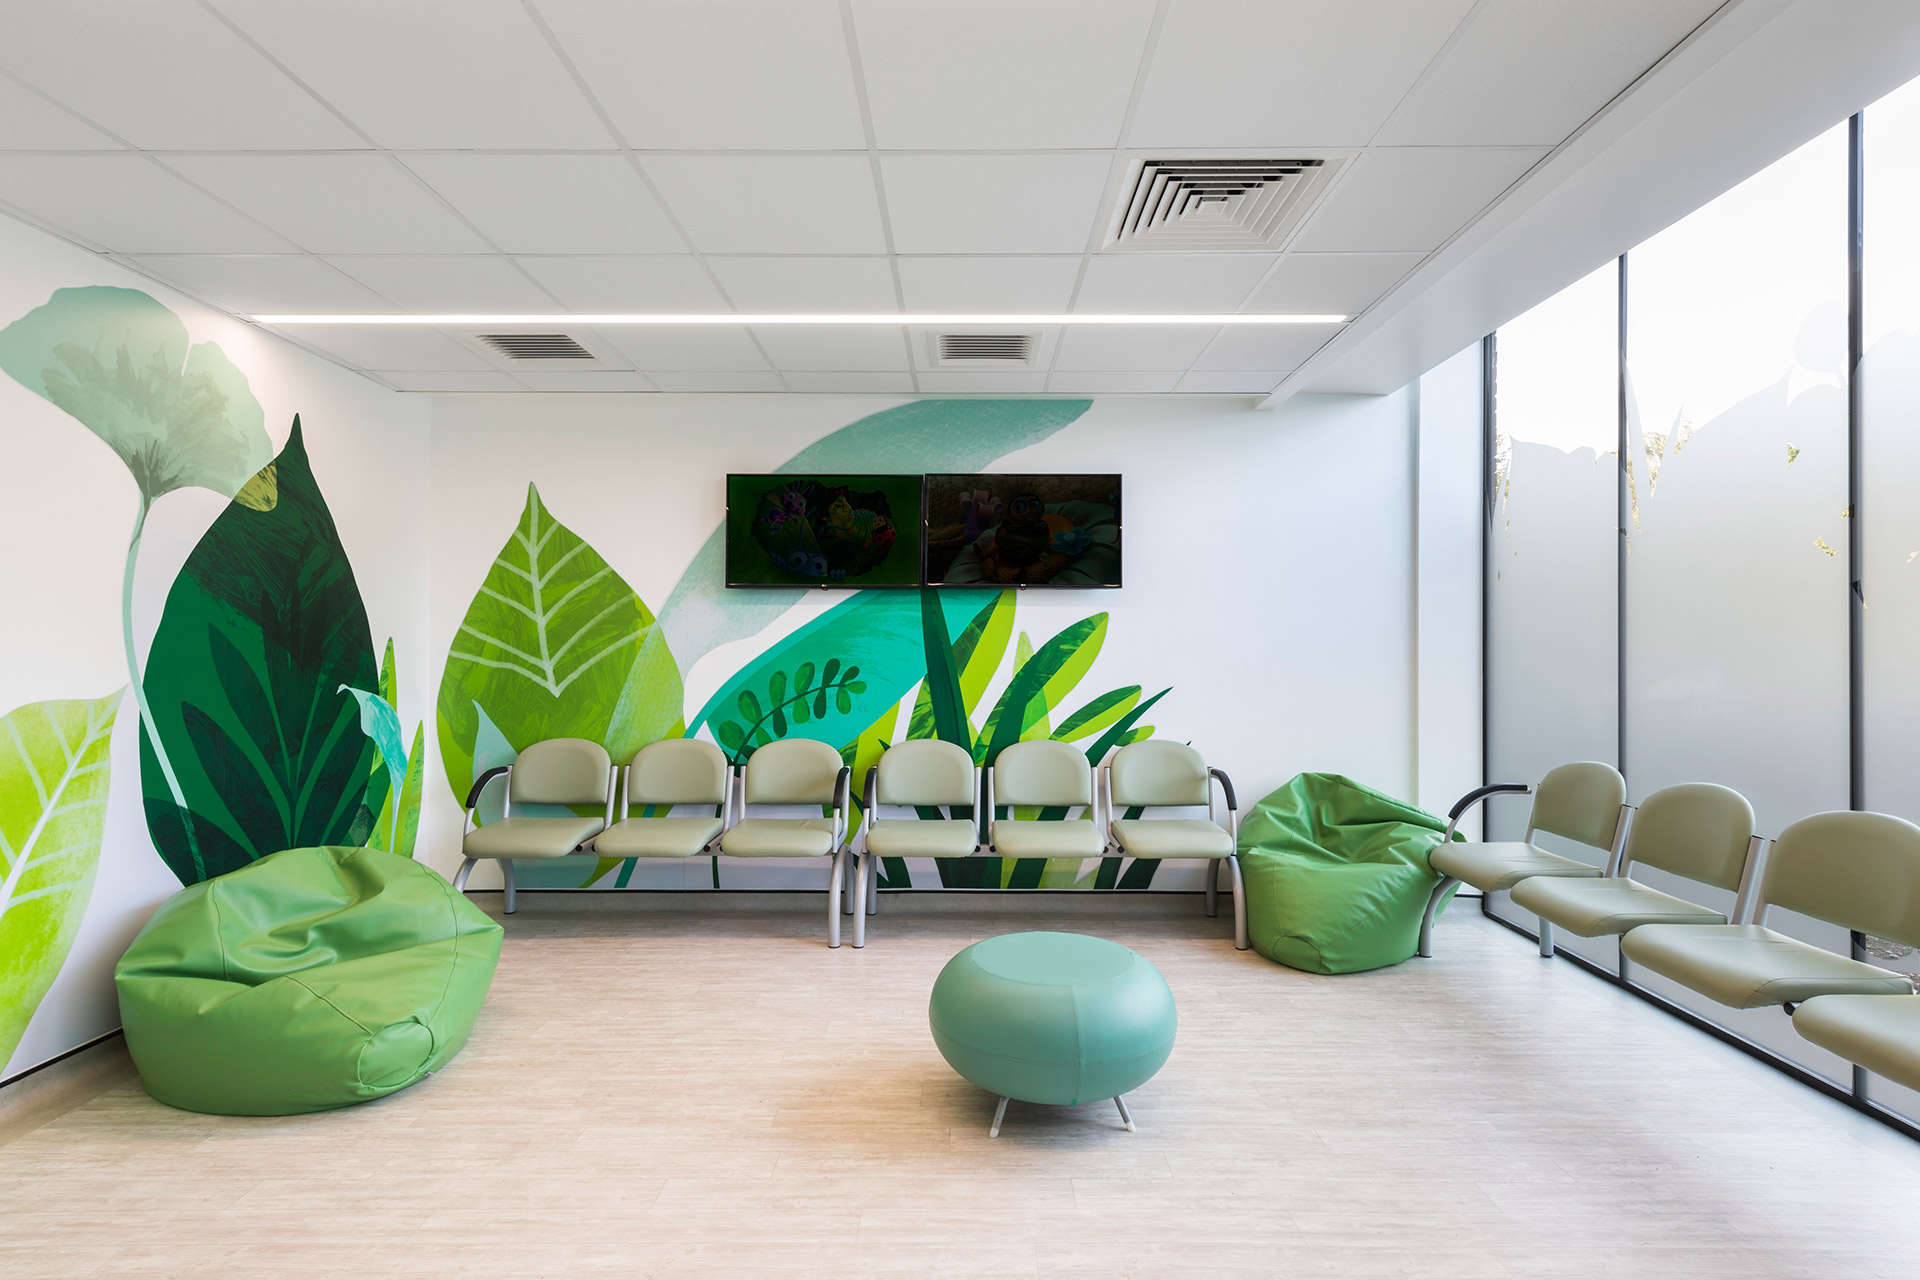 london hospital childrens waiting room interior